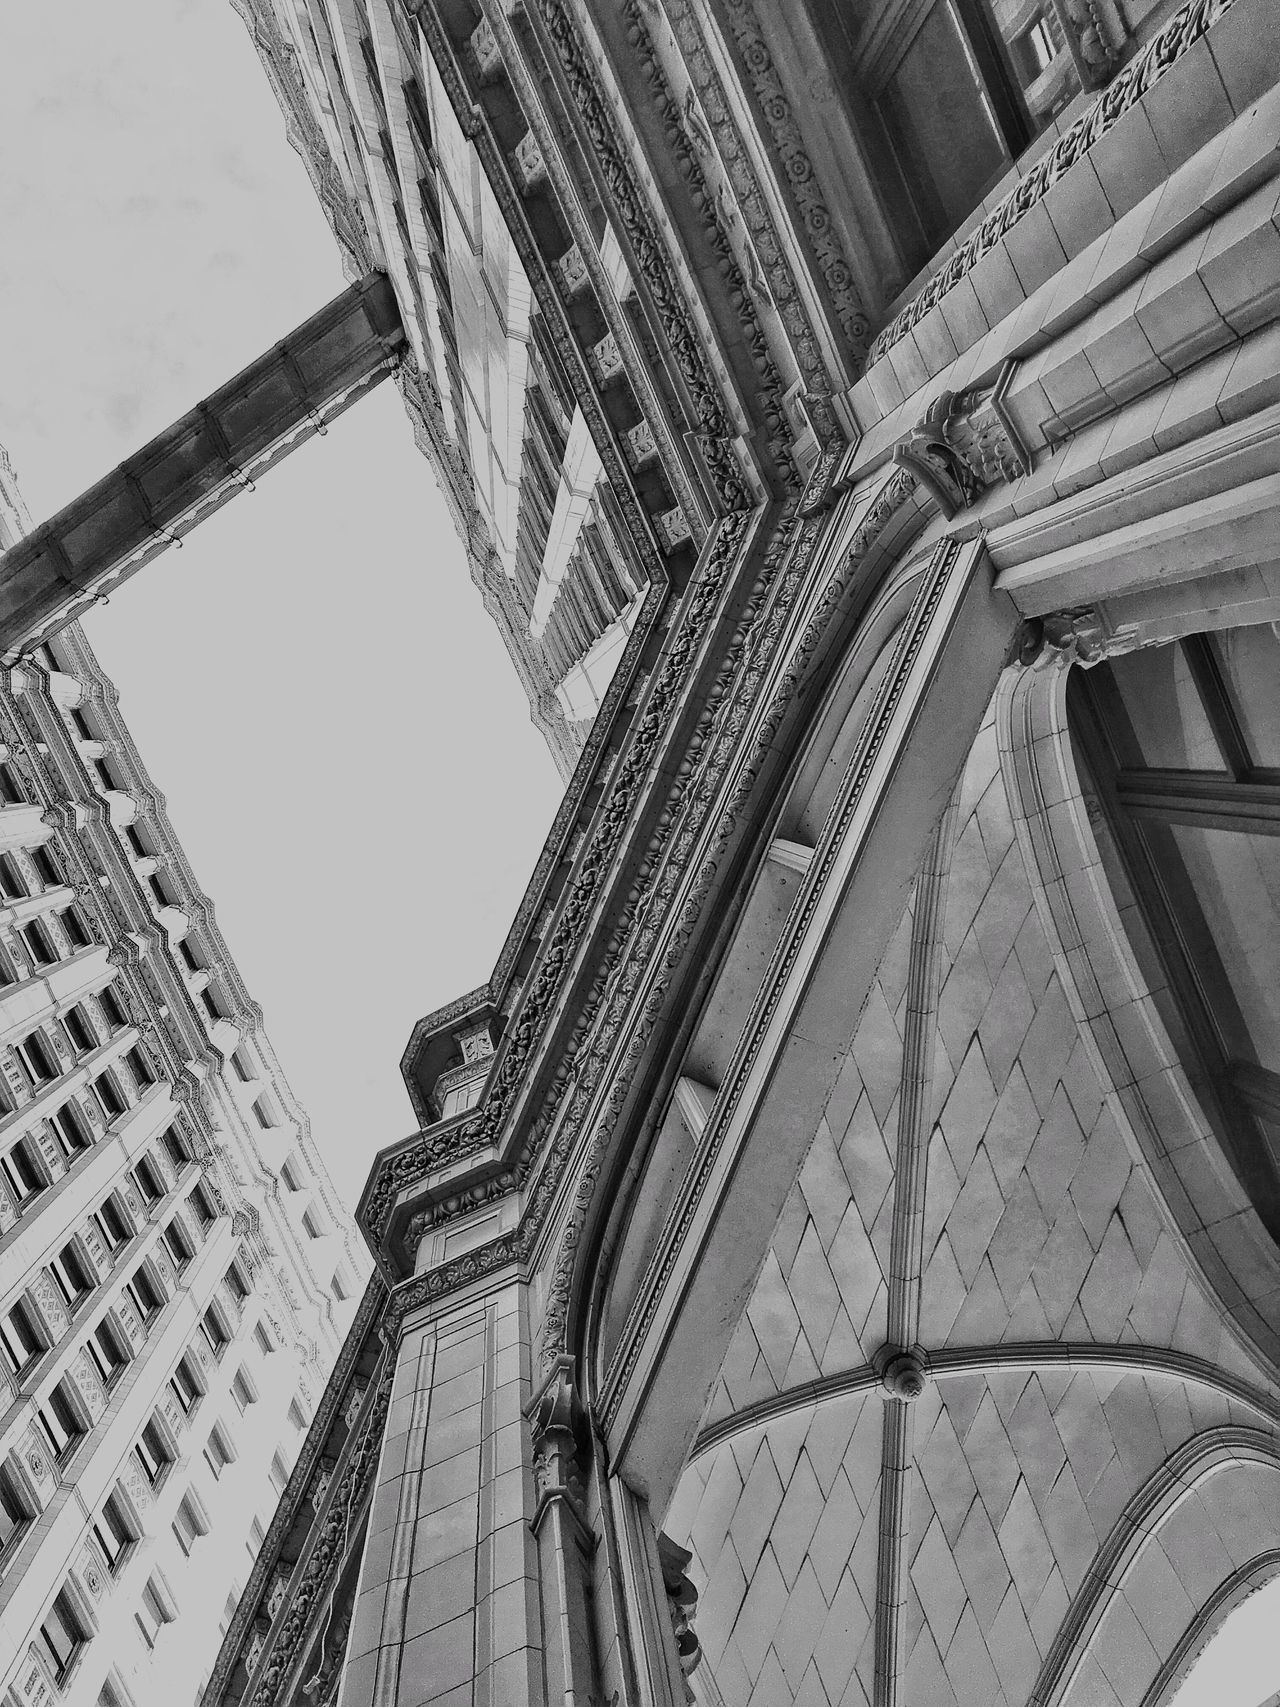 Details Architecture Architecture_collection Architectural Feature Architectural Detail Architecture_bw Architecturelovers Chicago Chicago Architecture Low Angle View Built Structure Classic City EyeEm Eyeemphotography IPhoneography Urbanphotography Urbanexploration Mag Mile Loop